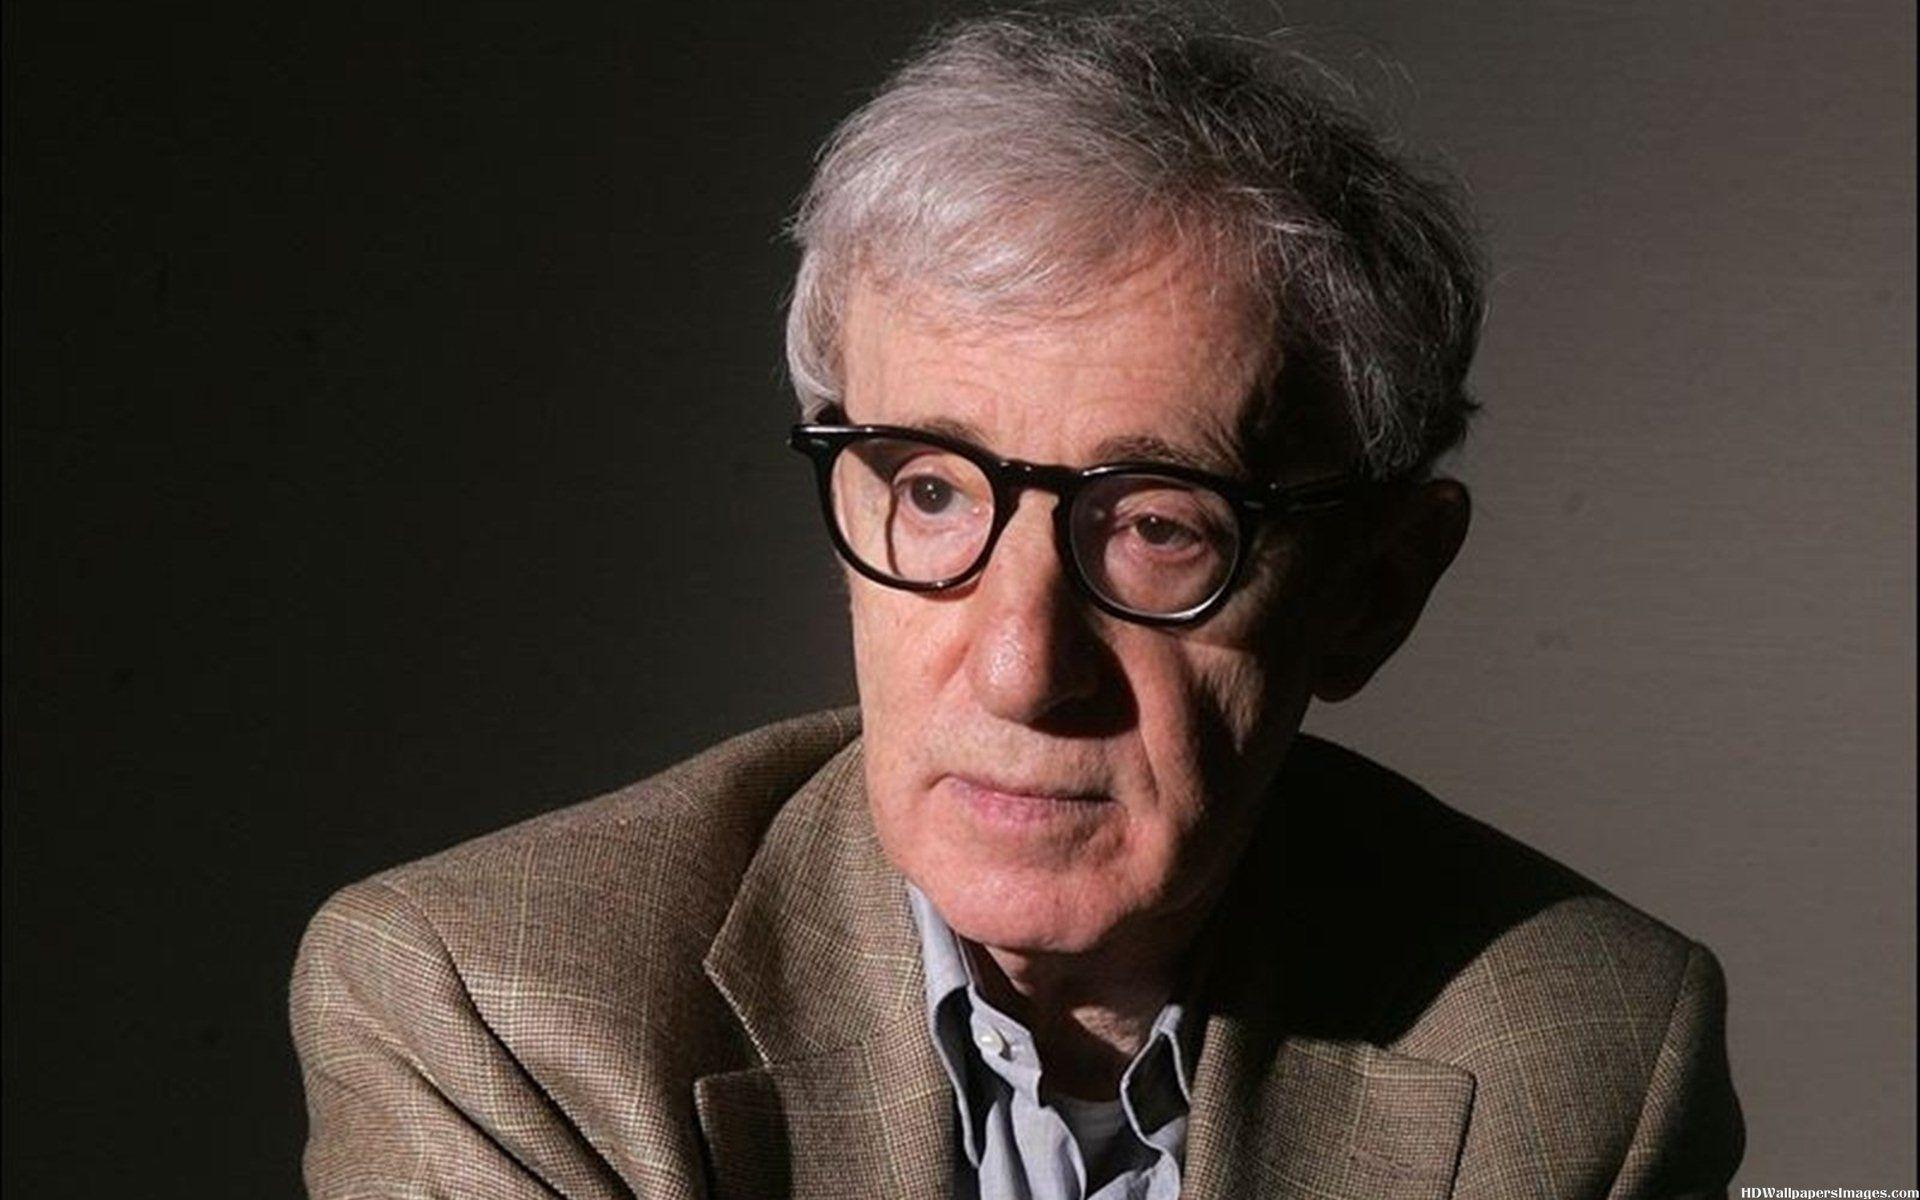 Woody Allen wallpaper | 1920x1200 | #65549